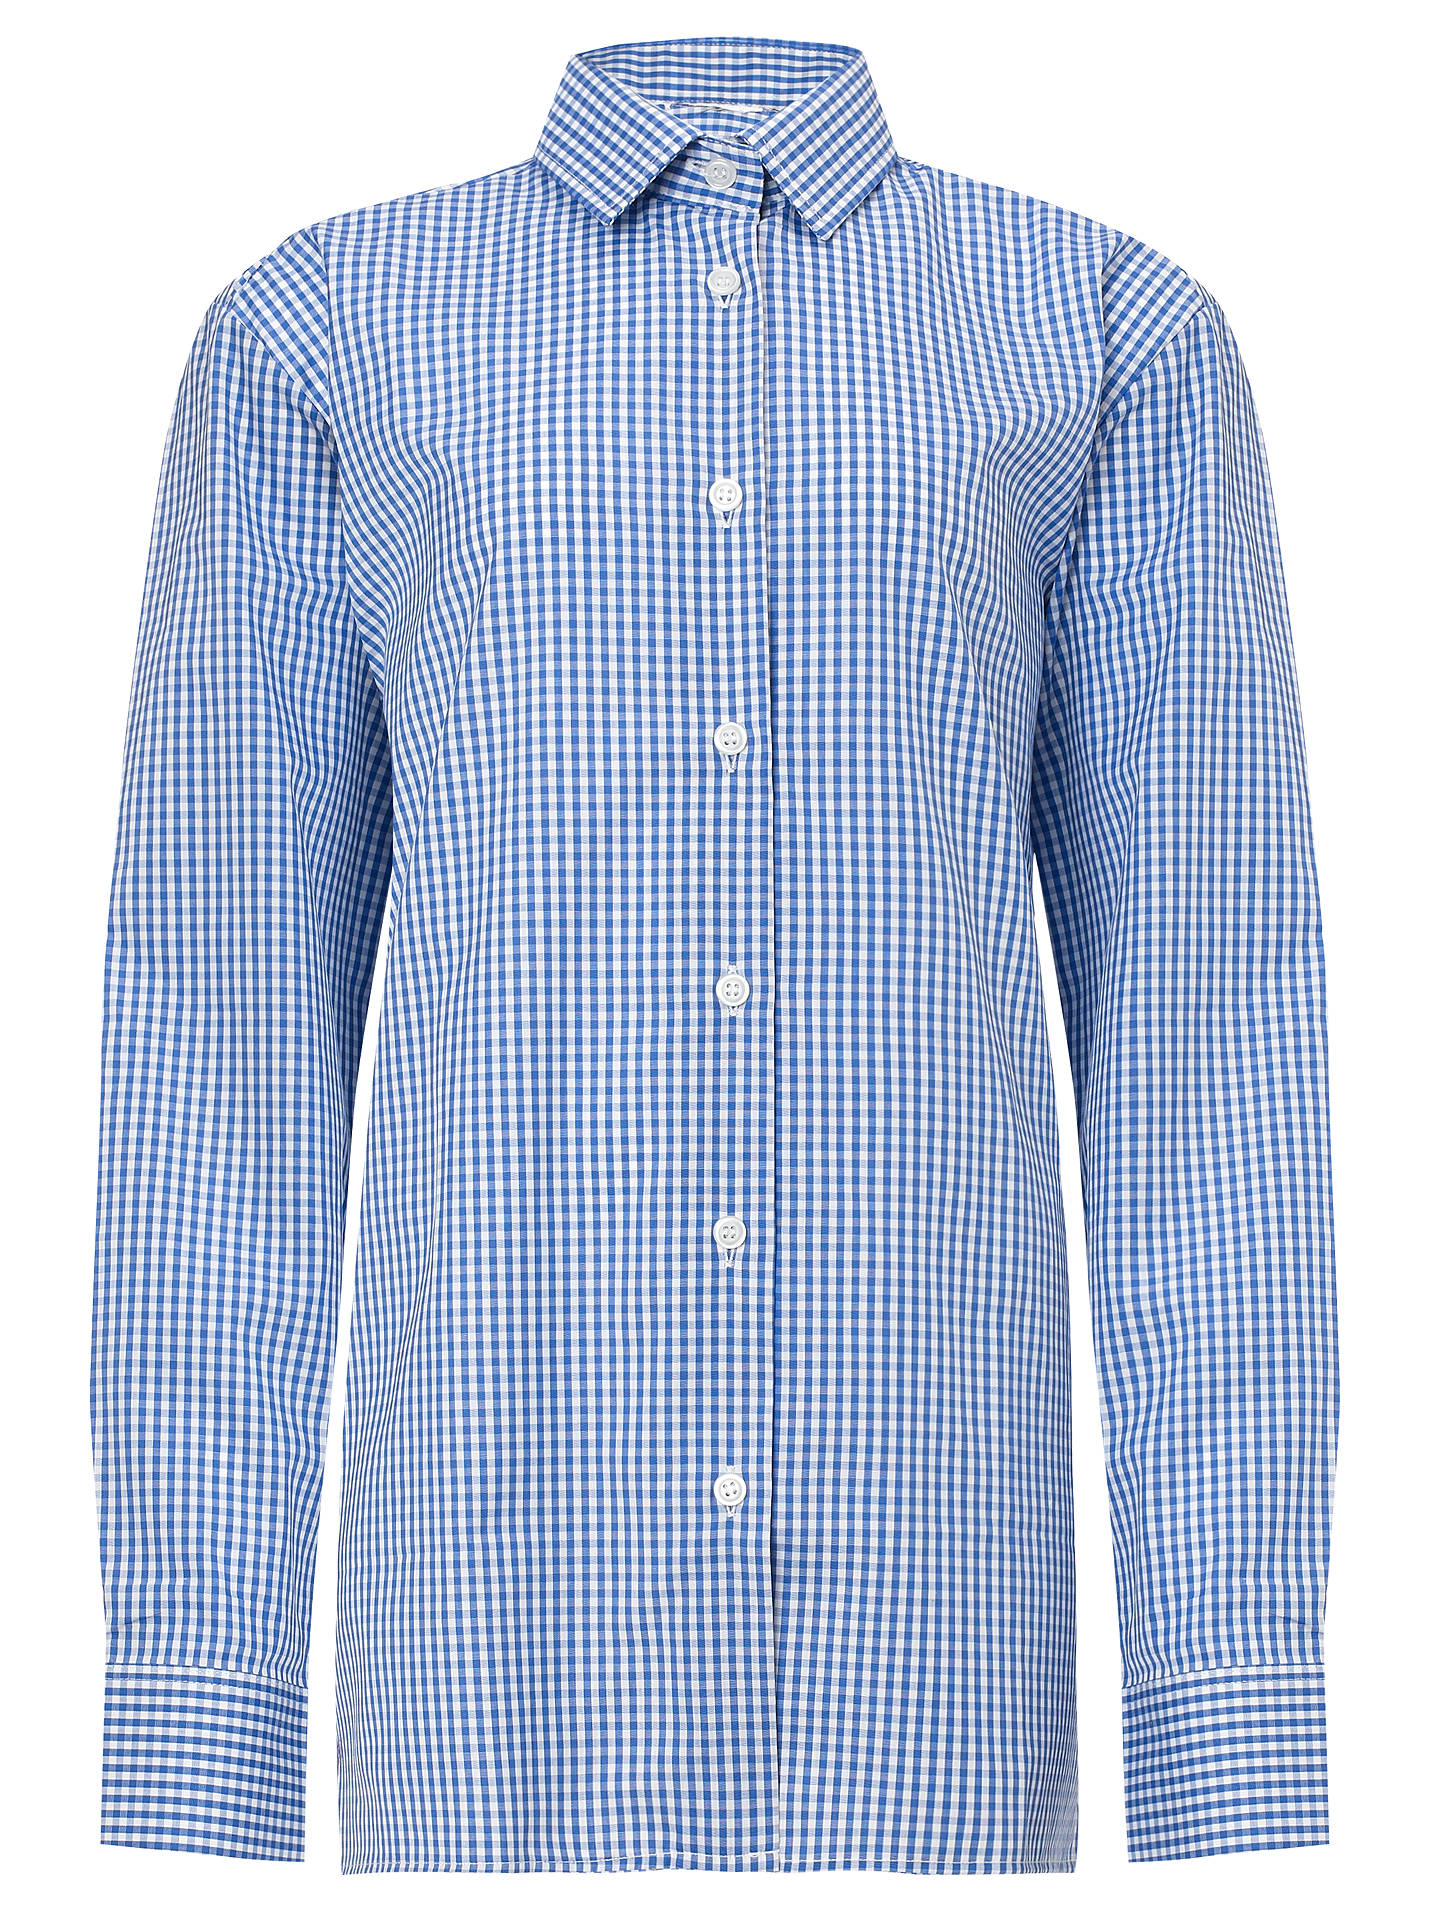 "BuyBoys' Long Sleeve Shirt, Pack of 2, Royal Blue/White, Collar 11.5"" Online at johnlewis.com"